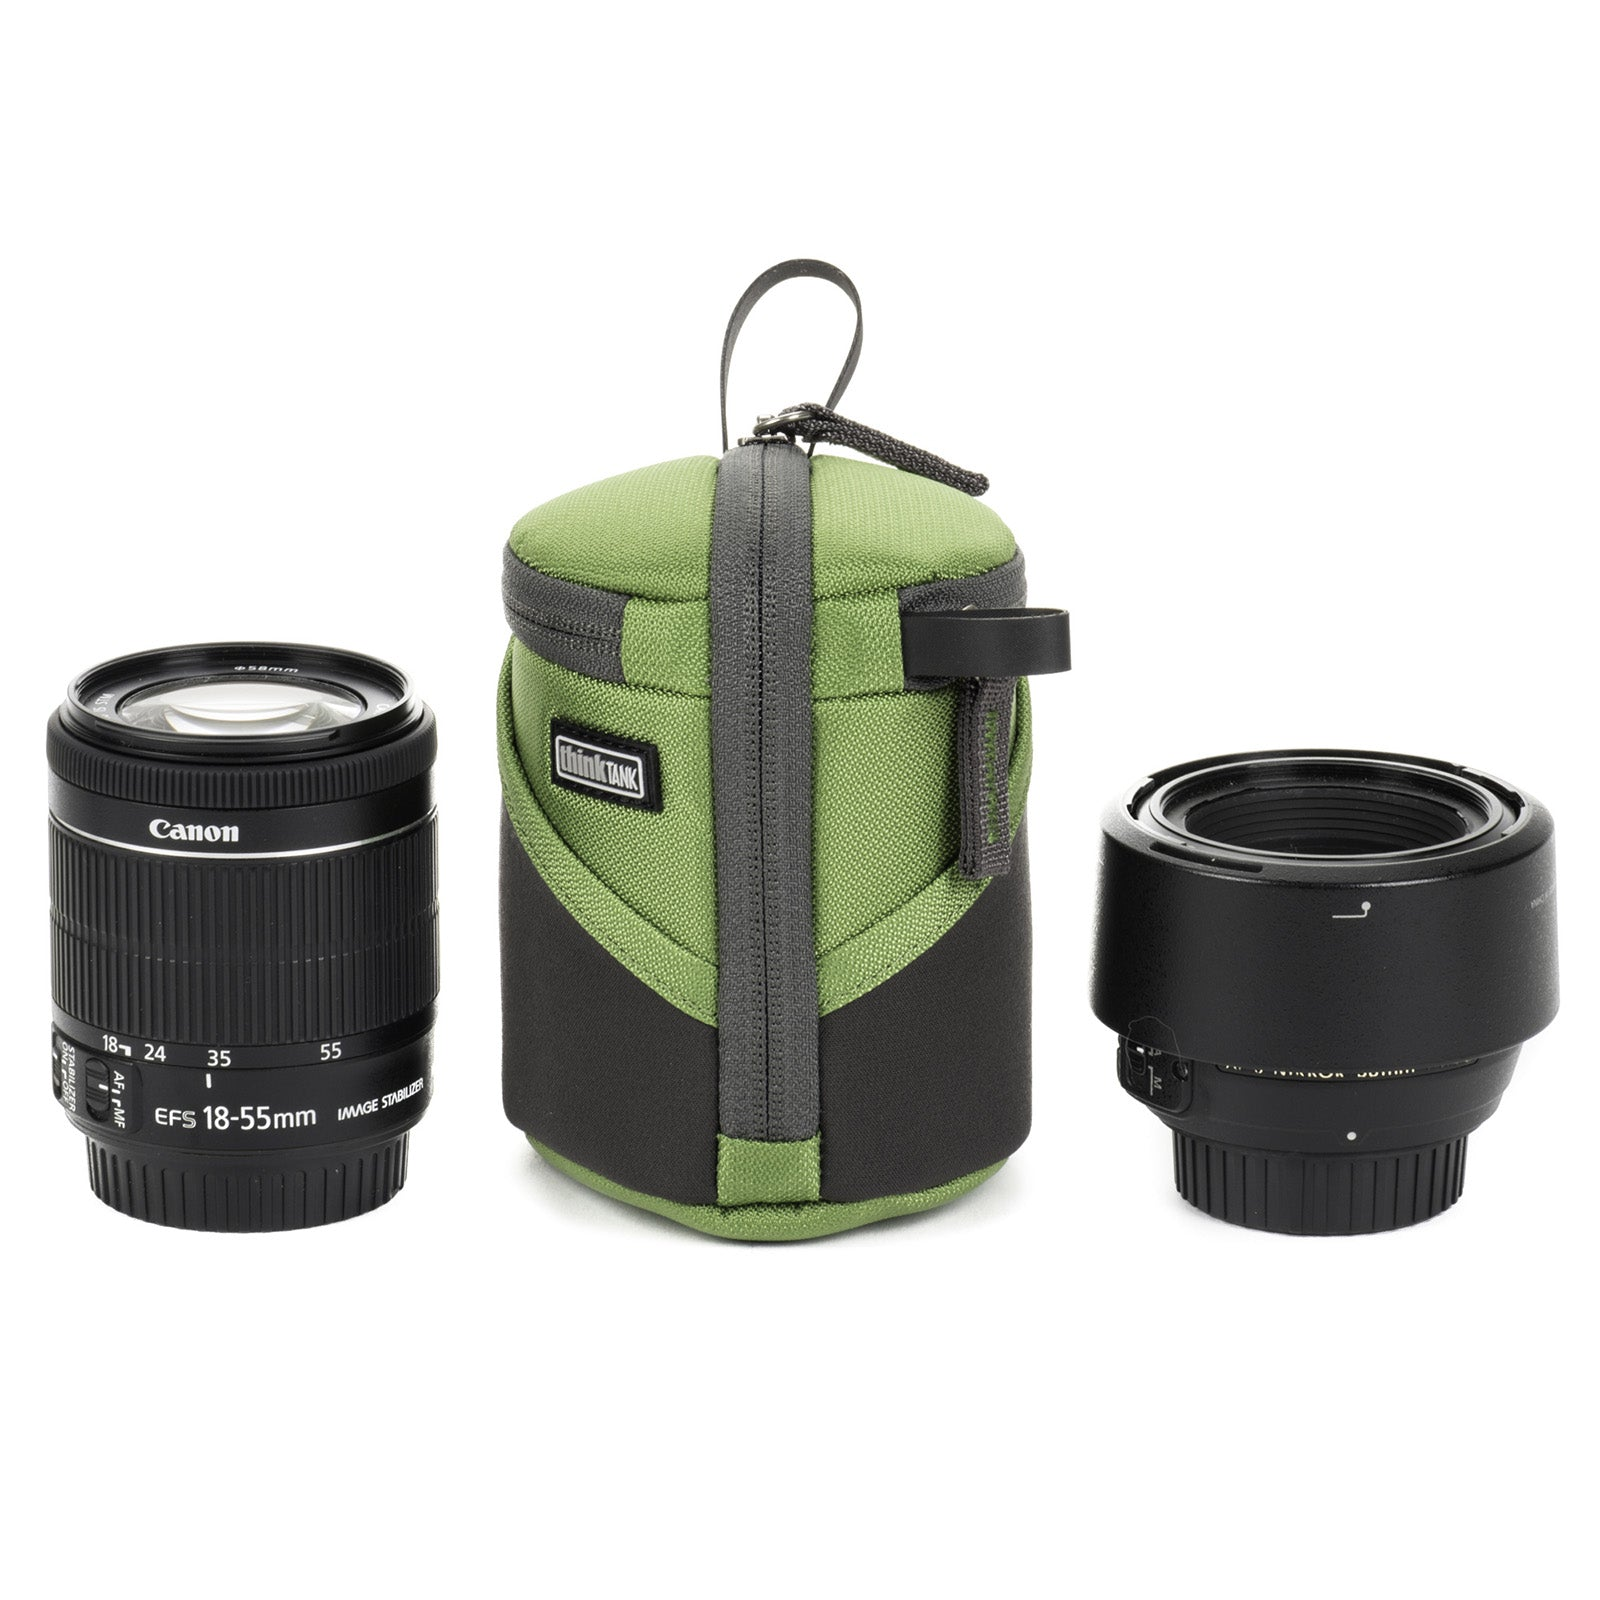 f32dc949 Lens Case Duo 5 protective case for DSLR and Mirrorless lenses ...